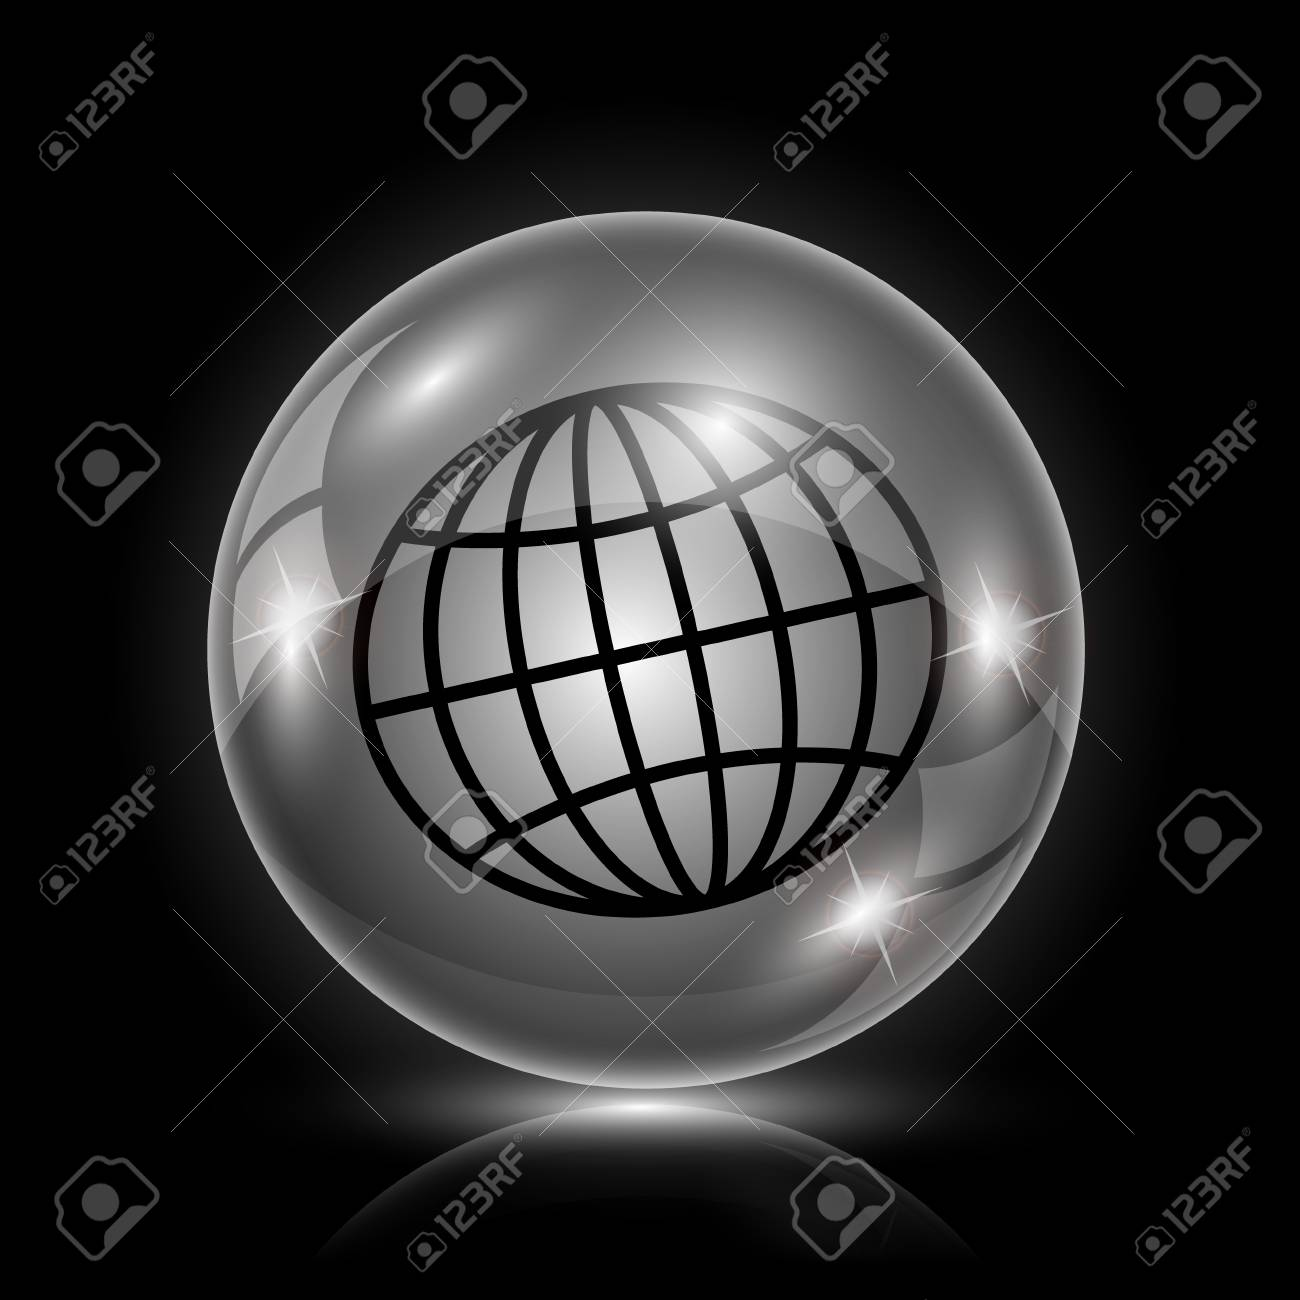 Shiny glossy icon - glass ball on black background Stock Vector - 26377963